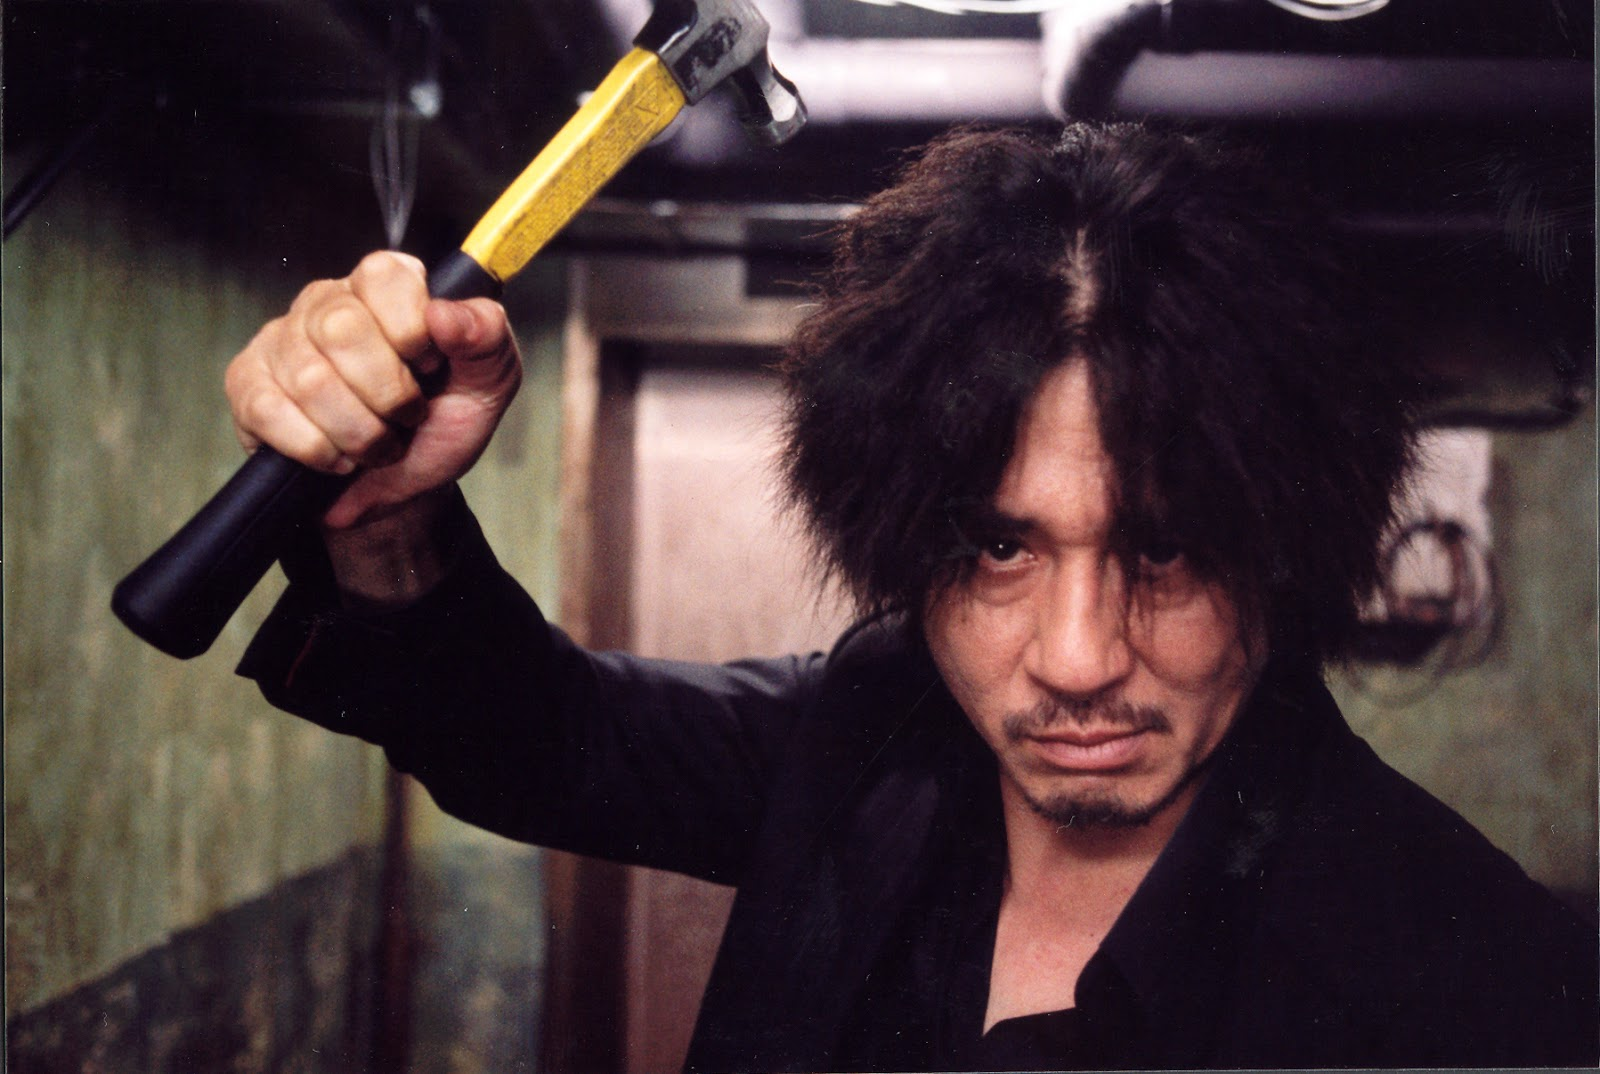 """Old Boy - The 11 Best """"One-Shot"""" Fight Scenes in TV and Movies - thescriptblog.com"""